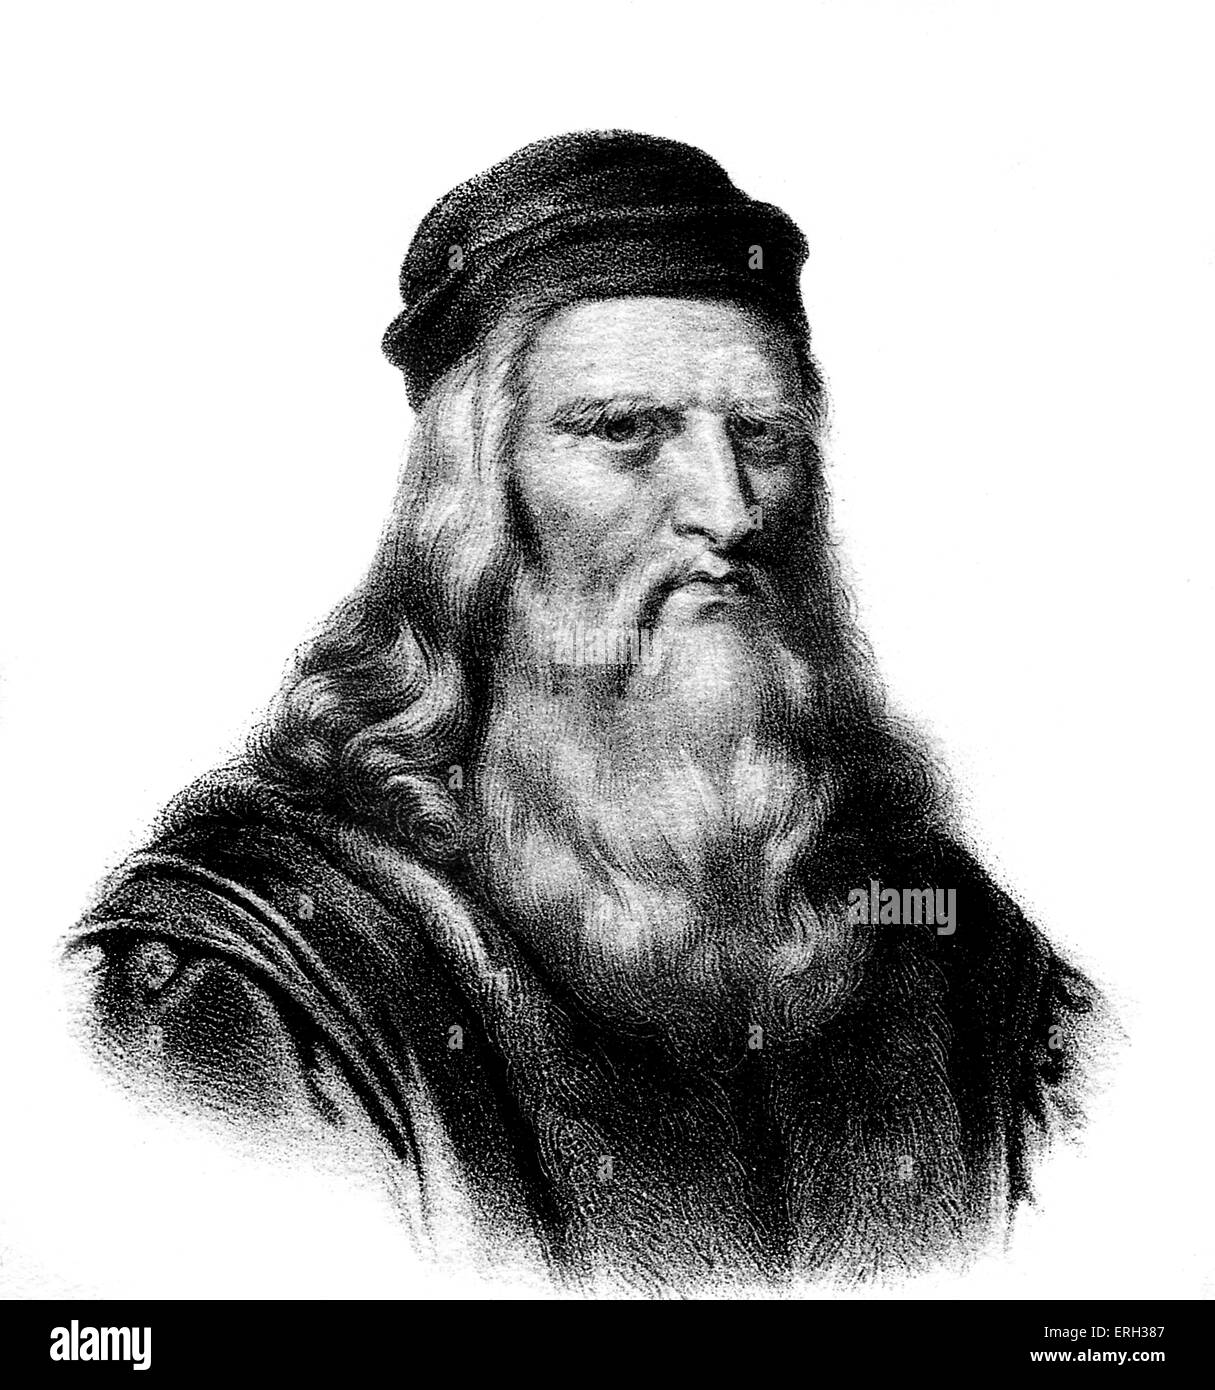 Leonardo da Vinci -  Italian Renaissance painter, sculptor, writer, scientist, architect and engineer.1452-1519 - Stock Image